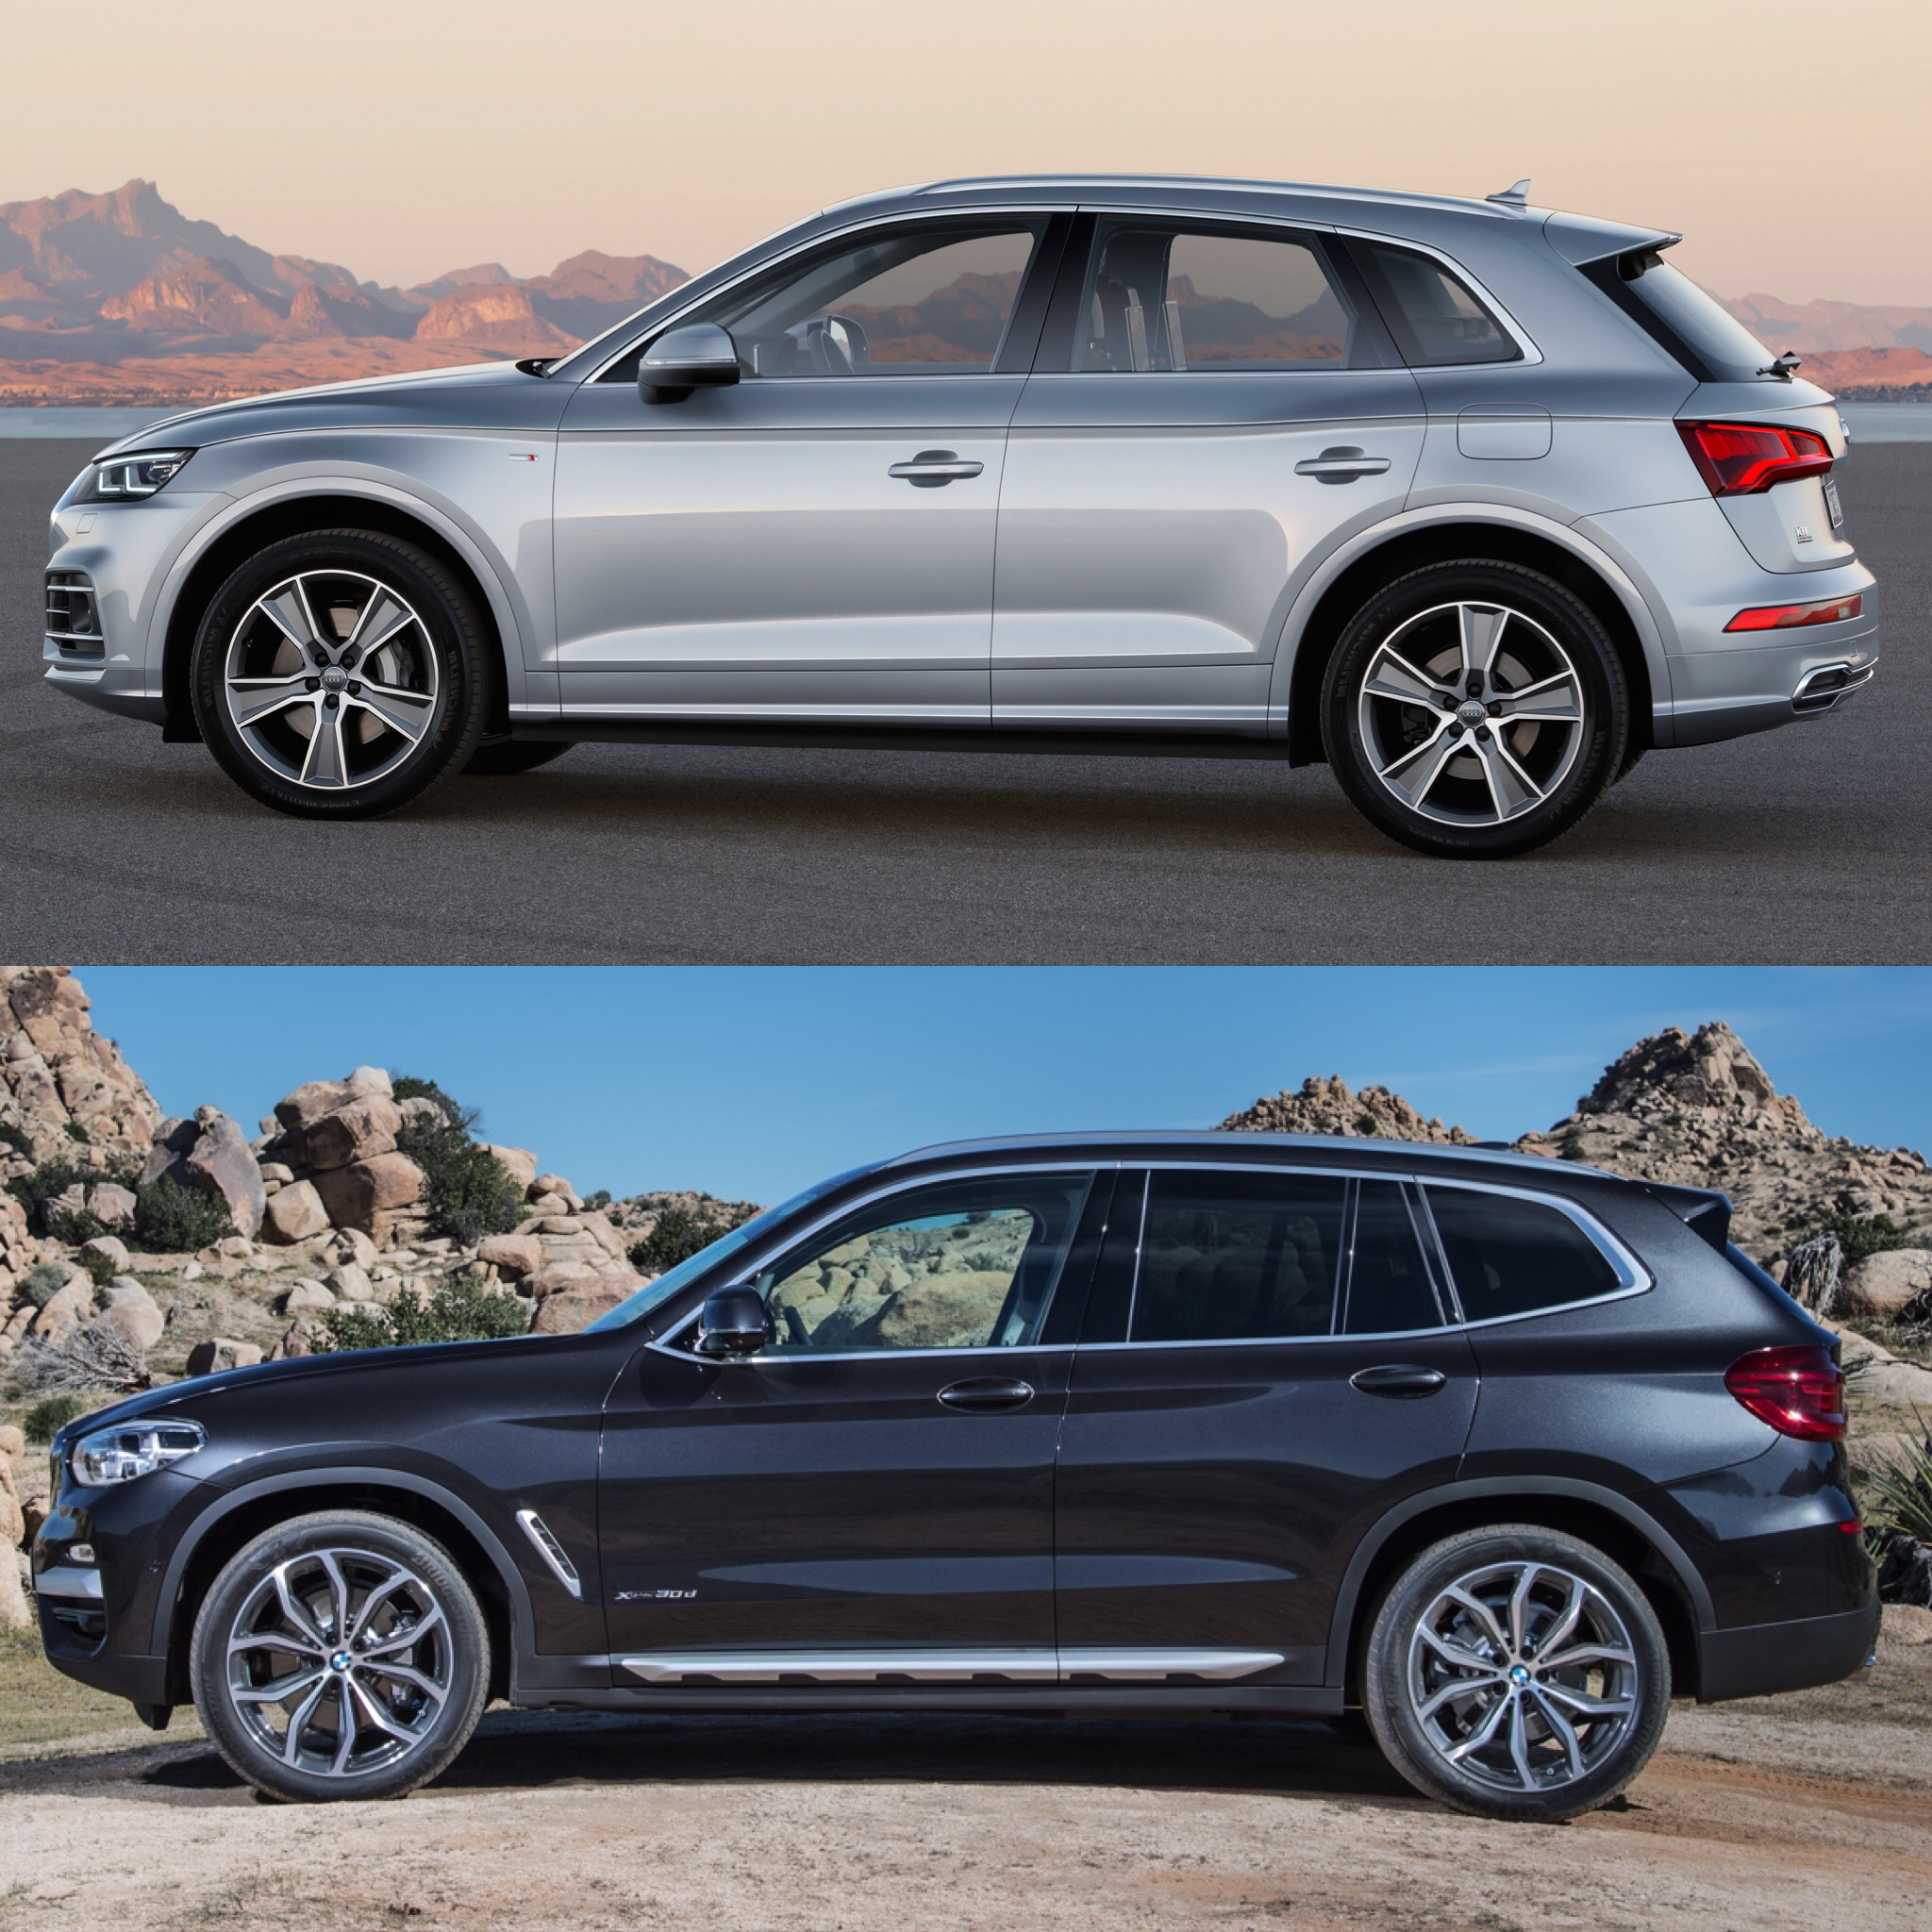 Photo Comparison: 2018 Audi Q5 Vs 2018 BMW X3